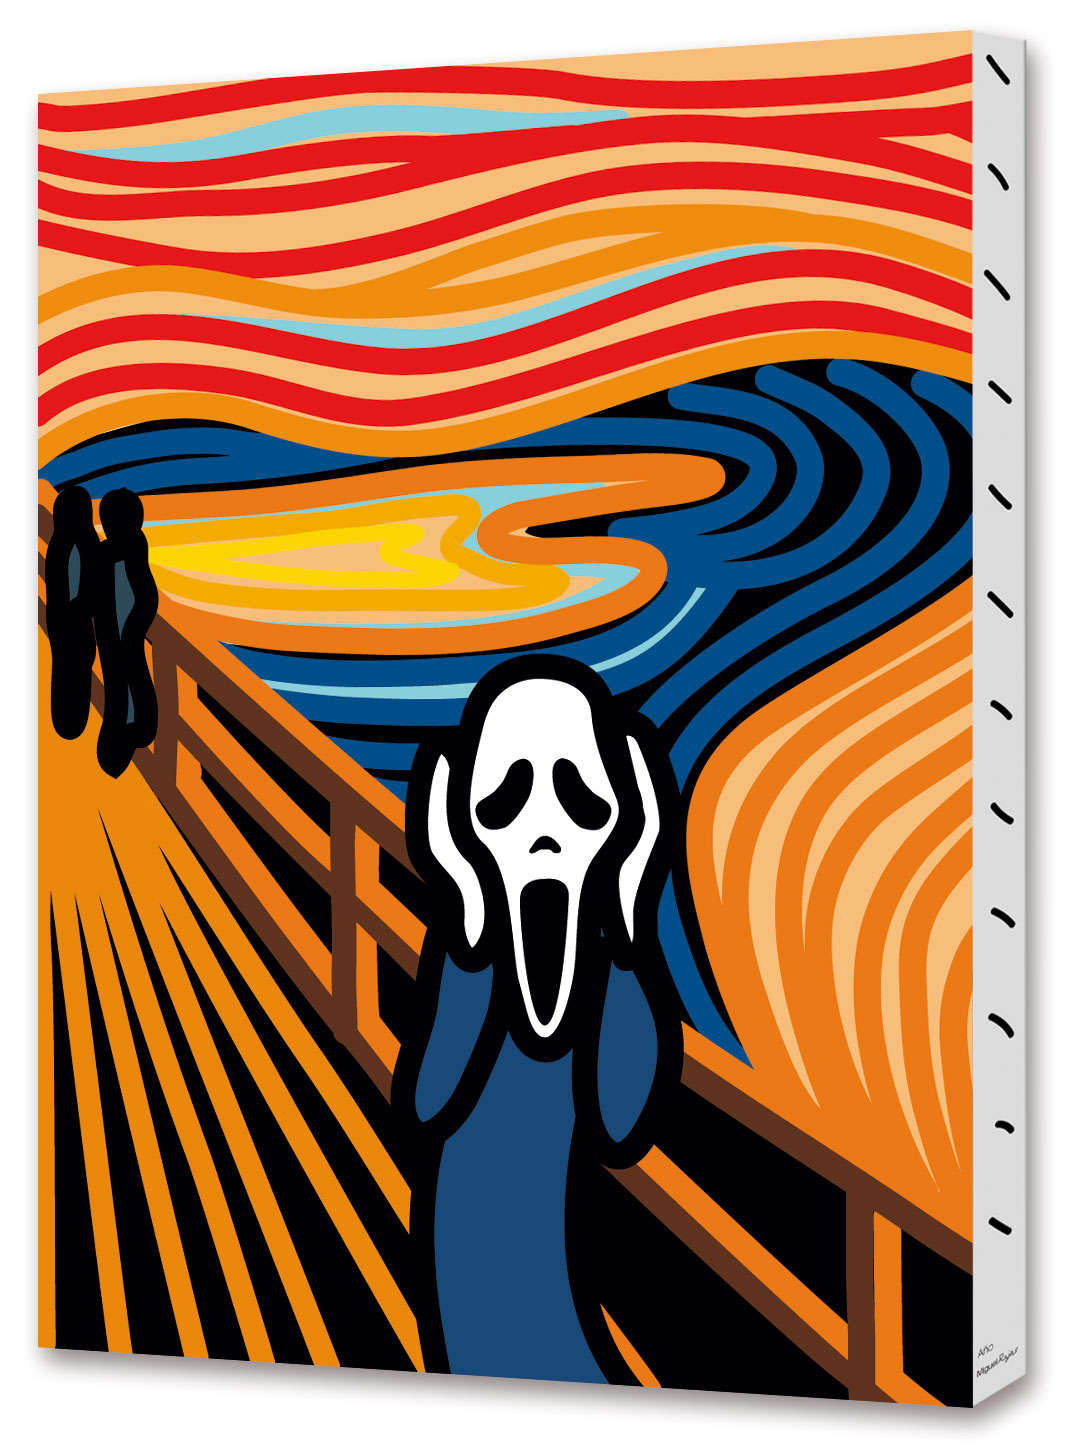 SCARY MUNCH (2014) - Miguel Rejas